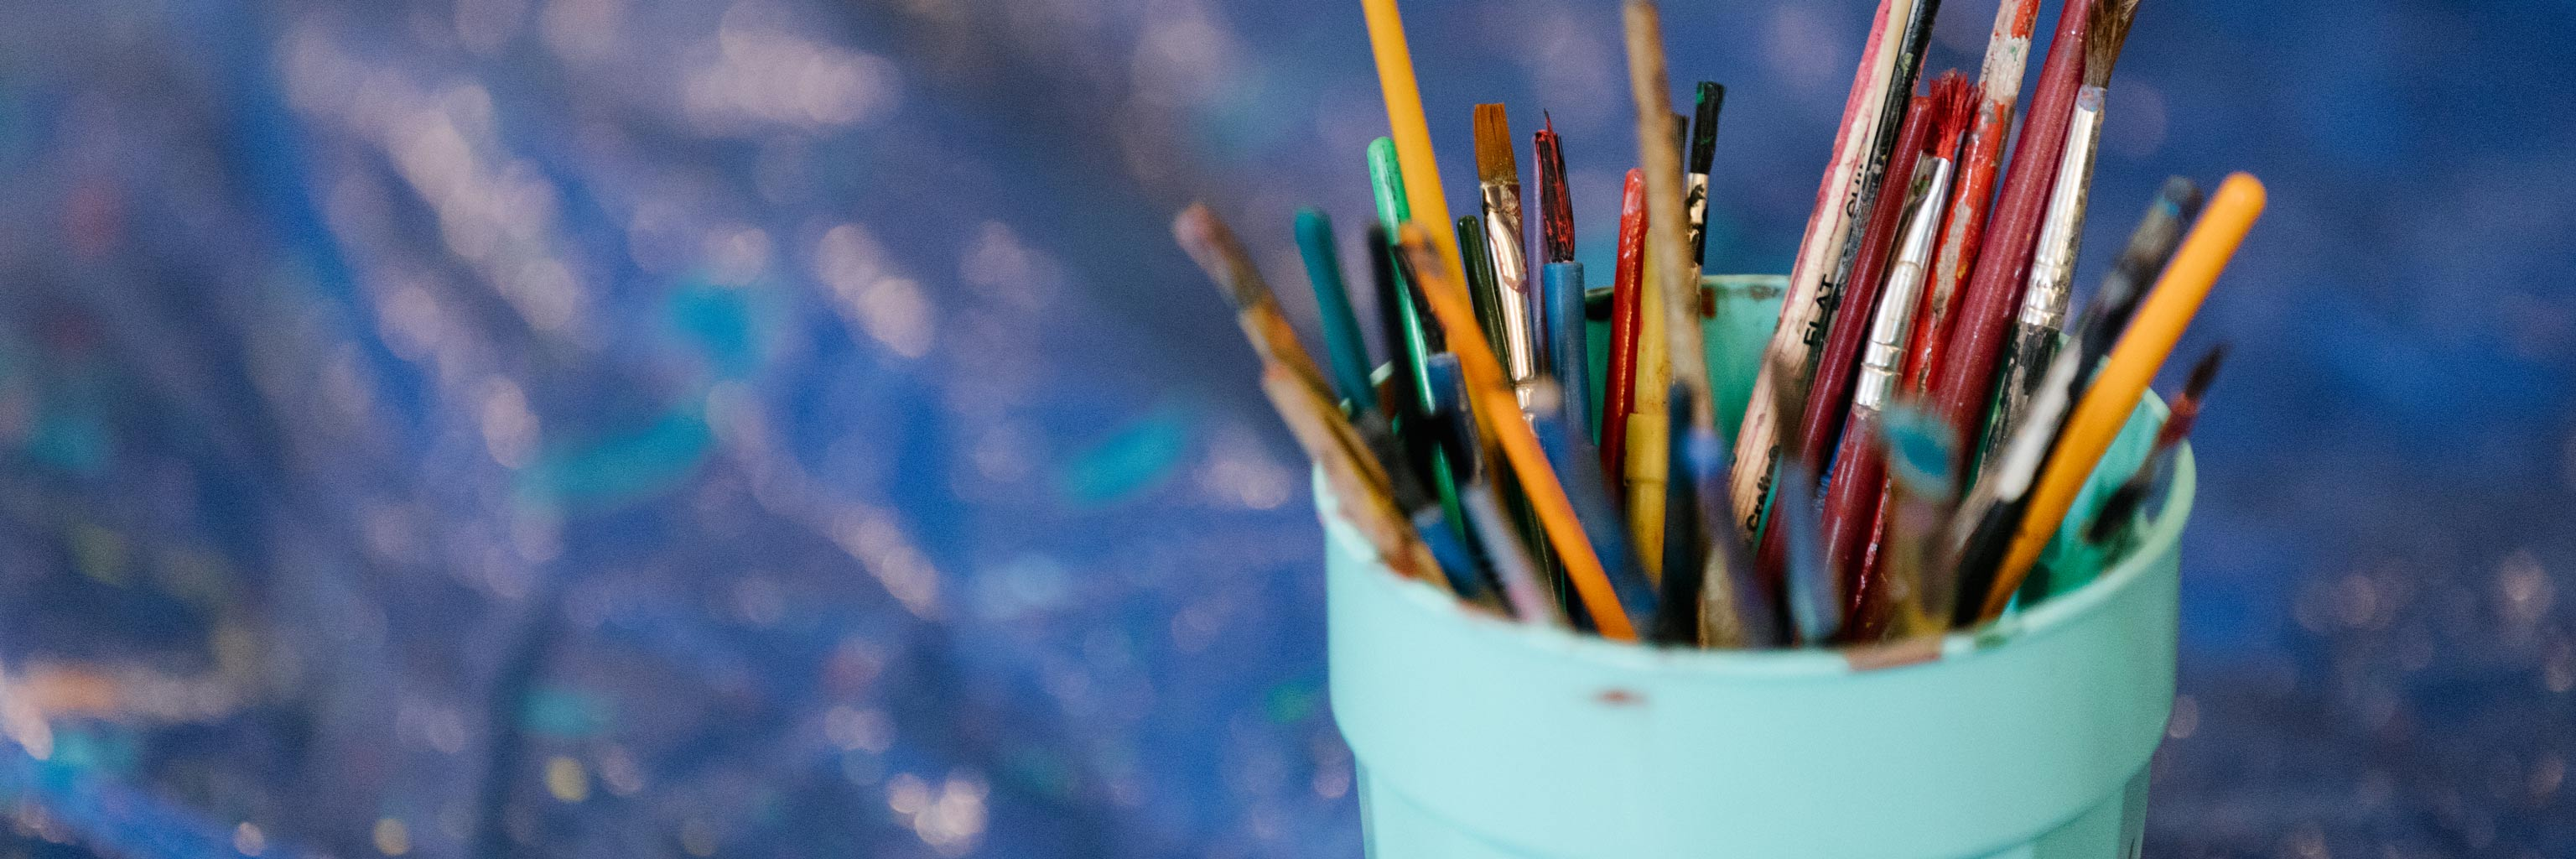 Close up of a cup full of paint brushes